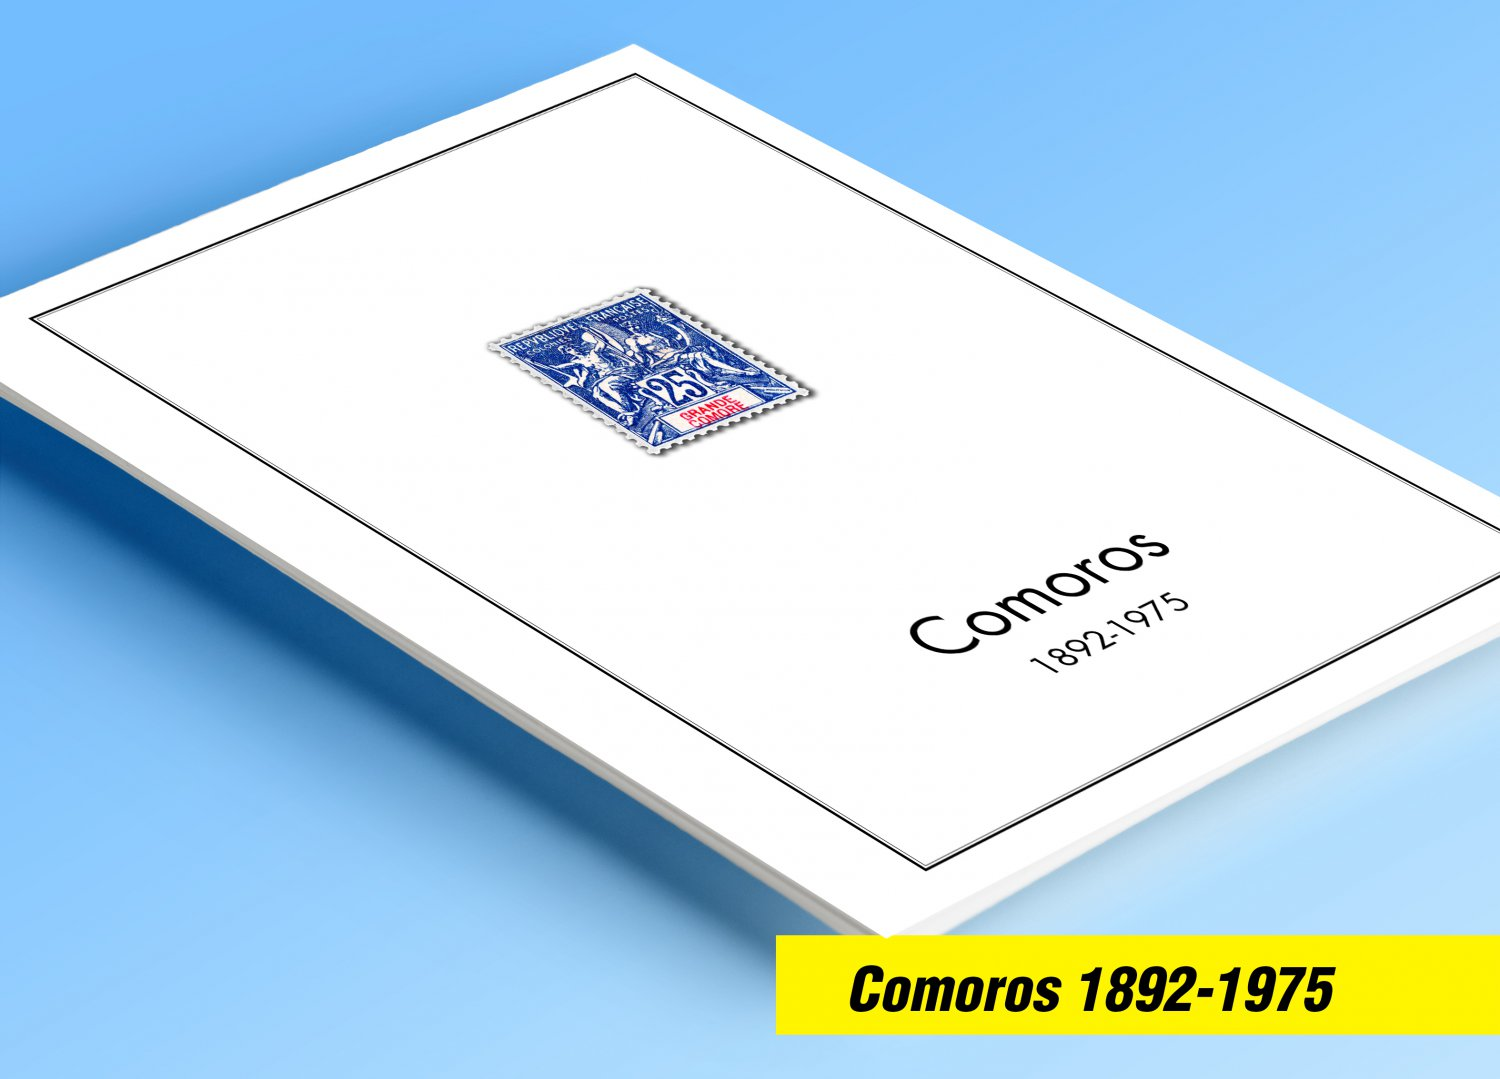 COLOR PRINTED COMOROS 1892-1975 STAMP ALBUM PAGES (25 illustrated pages)